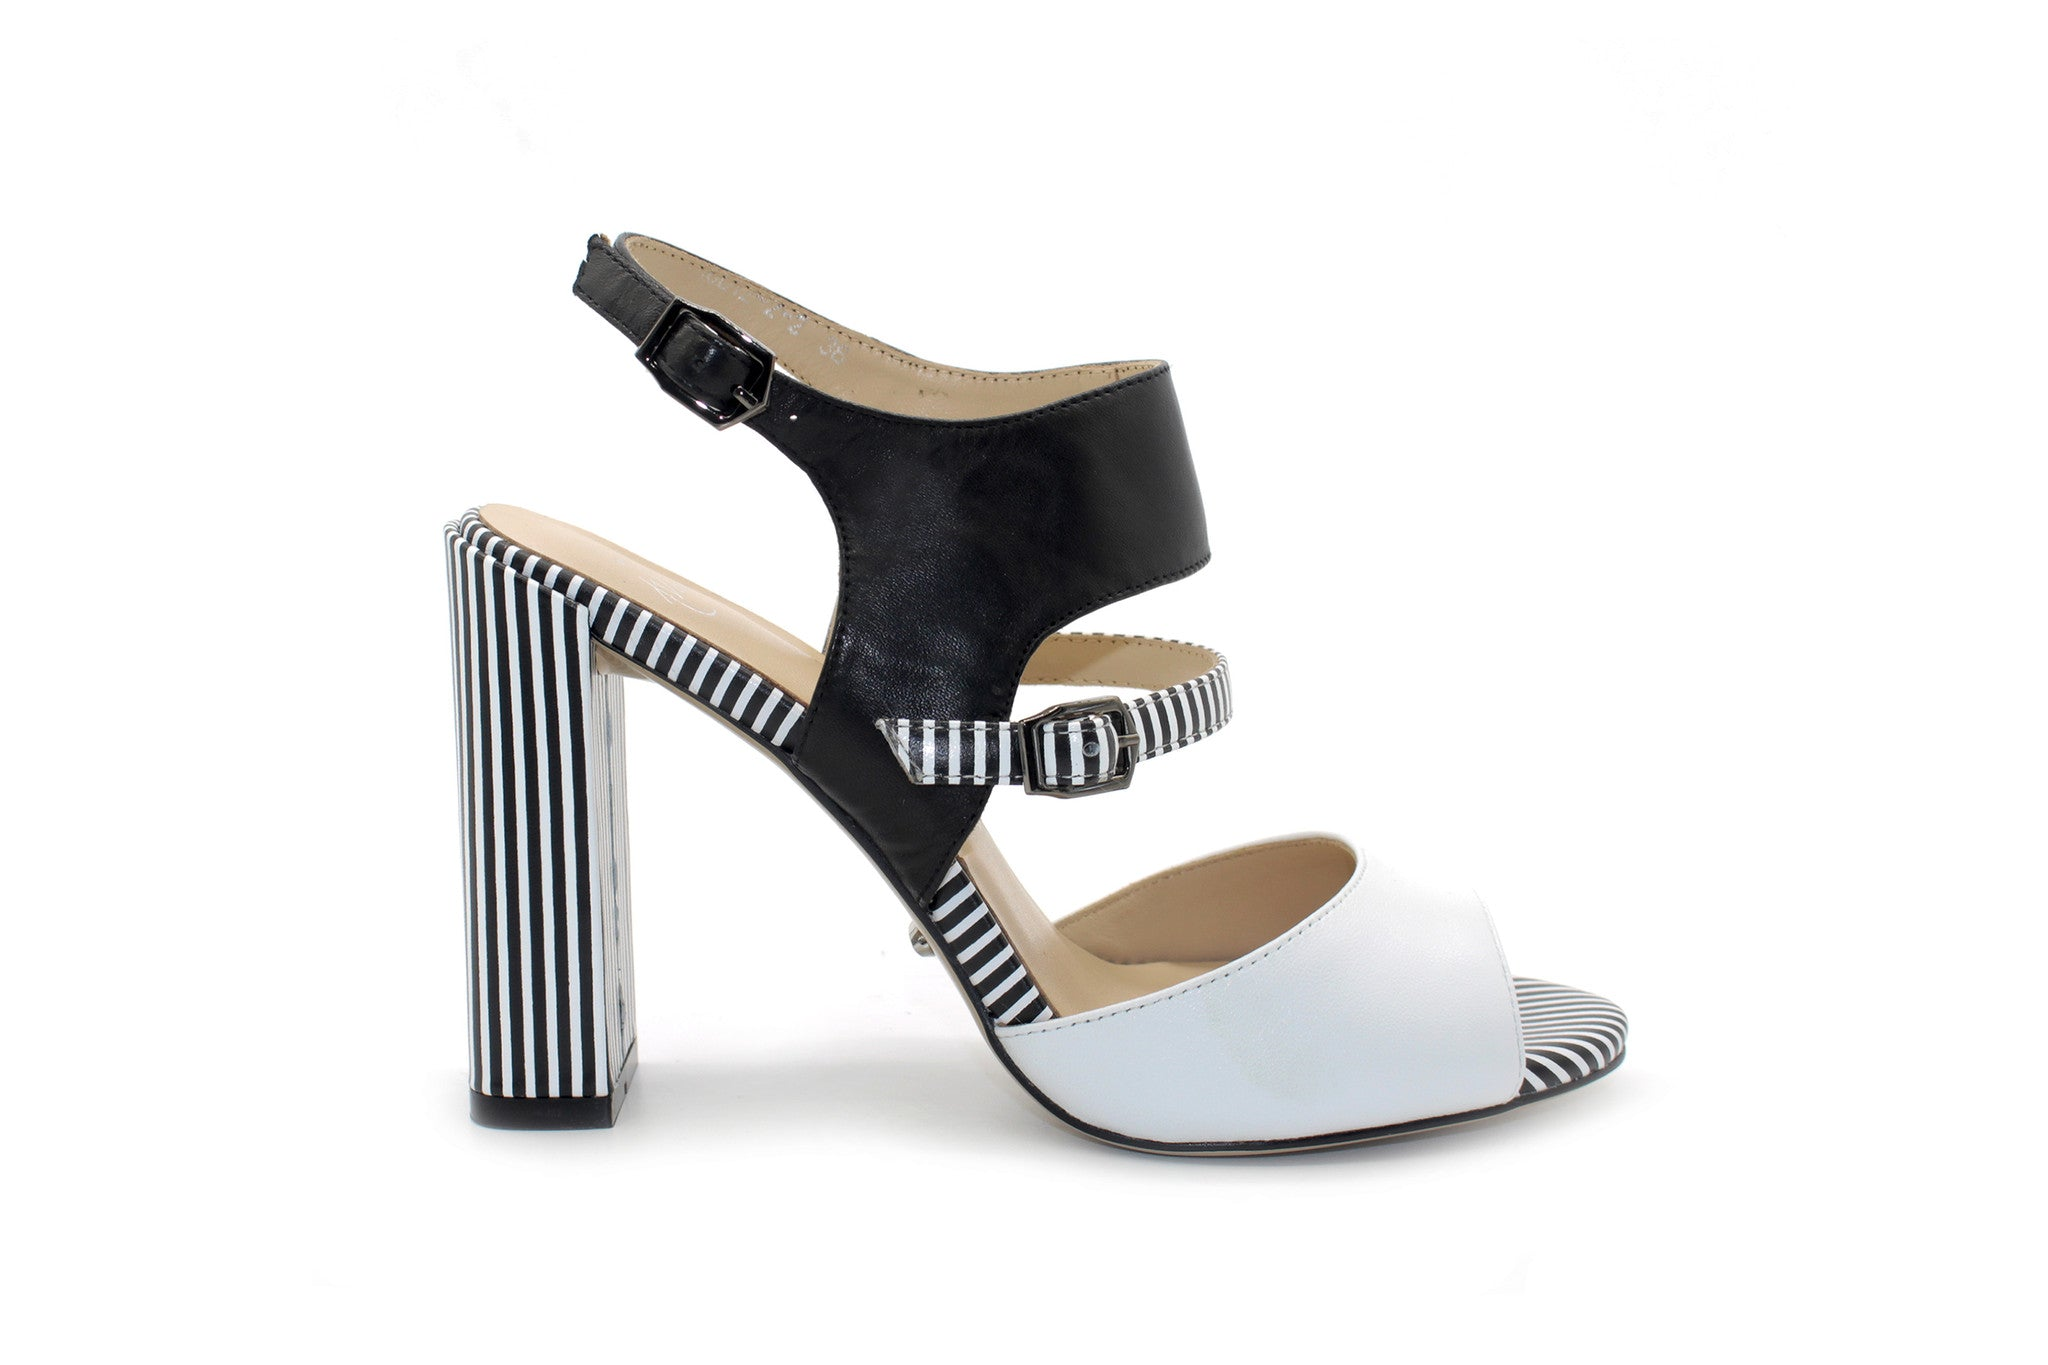 Black And White Pumps 3 Inch Heel OBPF0k